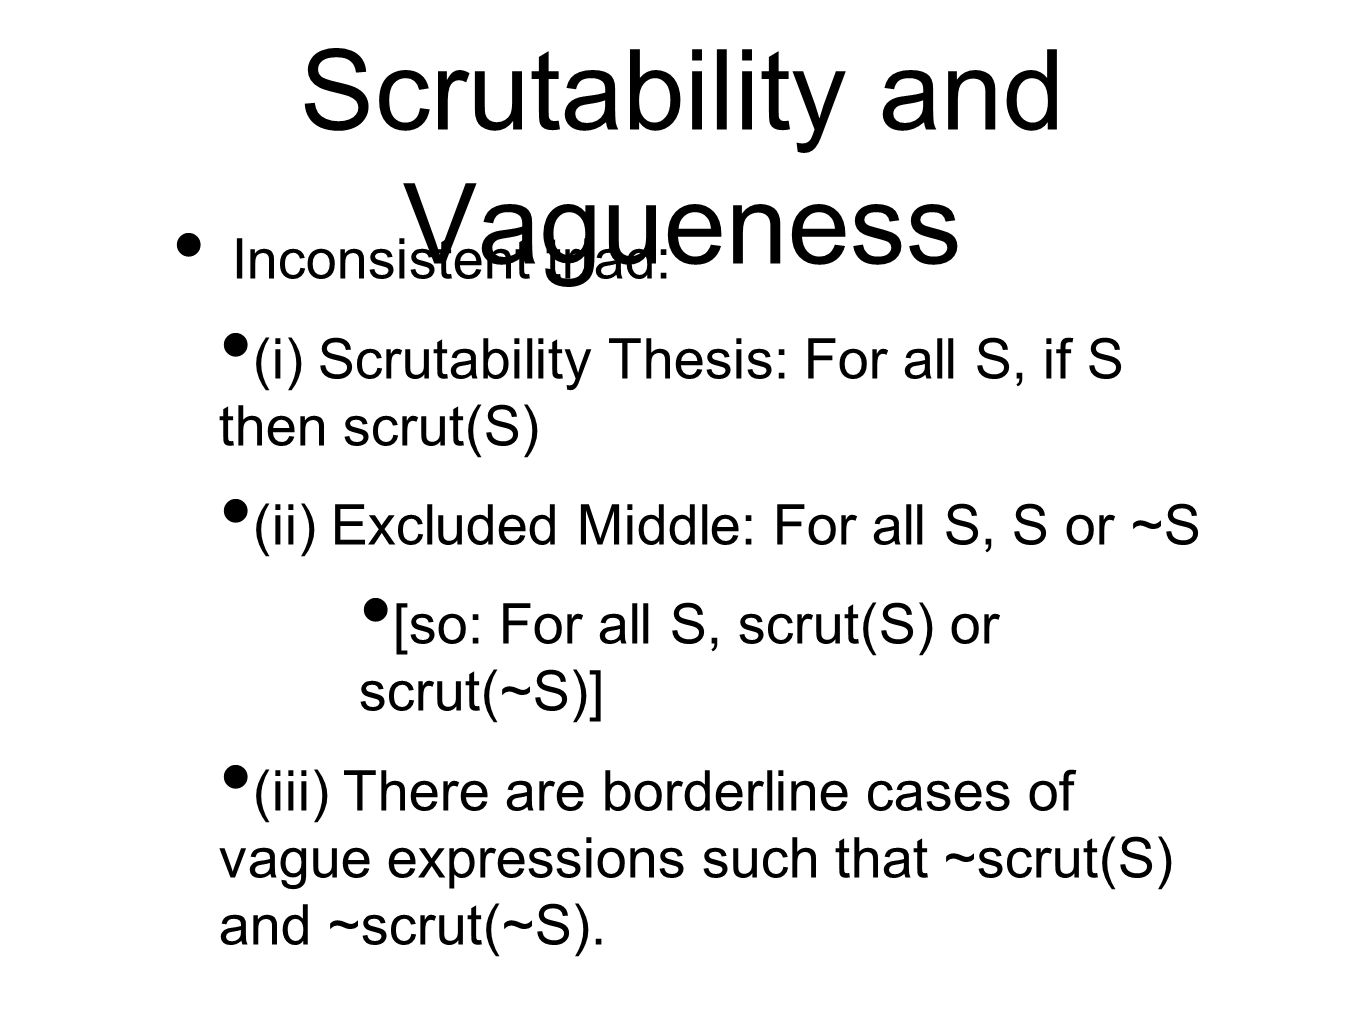 Scrutability and Vagueness Inconsistent triad: (i) Scrutability Thesis: For all S, if S then scrut(S) (ii) Excluded Middle: For all S, S or ~S [so: For all S, scrut(S) or scrut(~S)] (iii) There are borderline cases of vague expressions such that ~scrut(S) and ~scrut(~S).